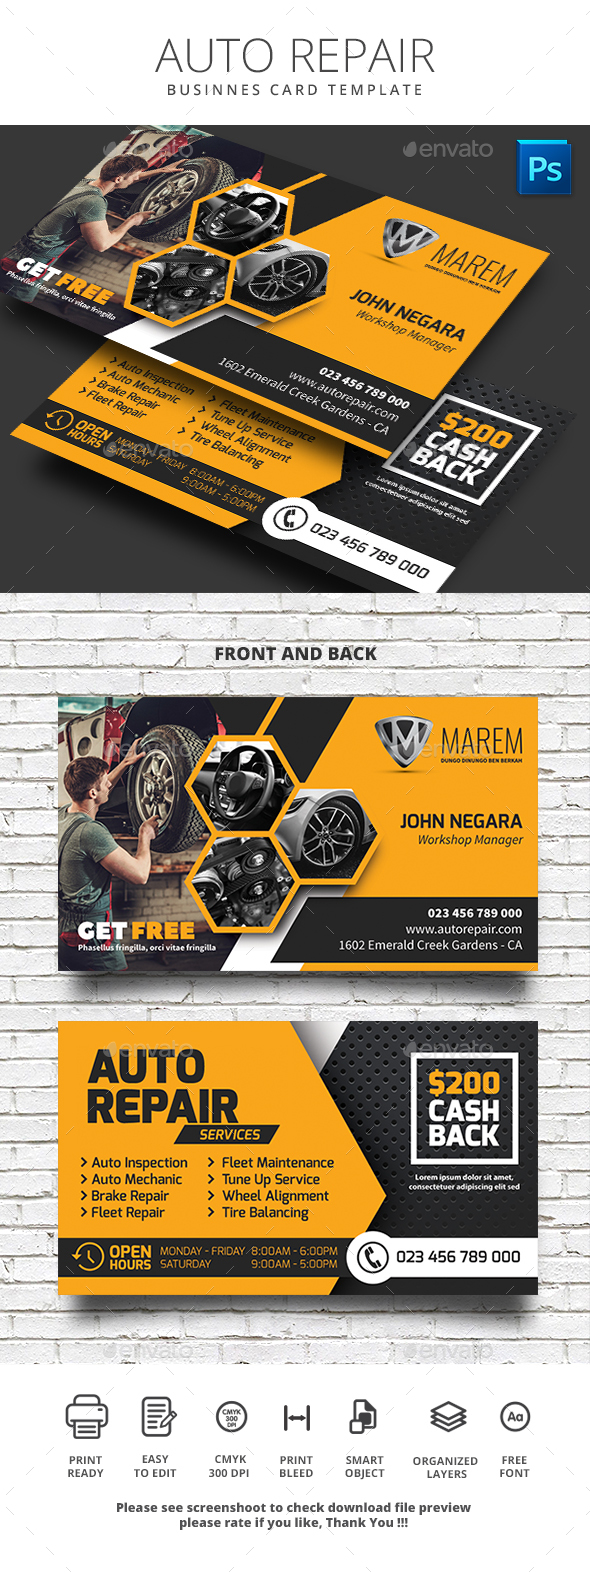 Car Business Card Templates & Designs from GraphicRiver Intended For Automotive Business Card Templates